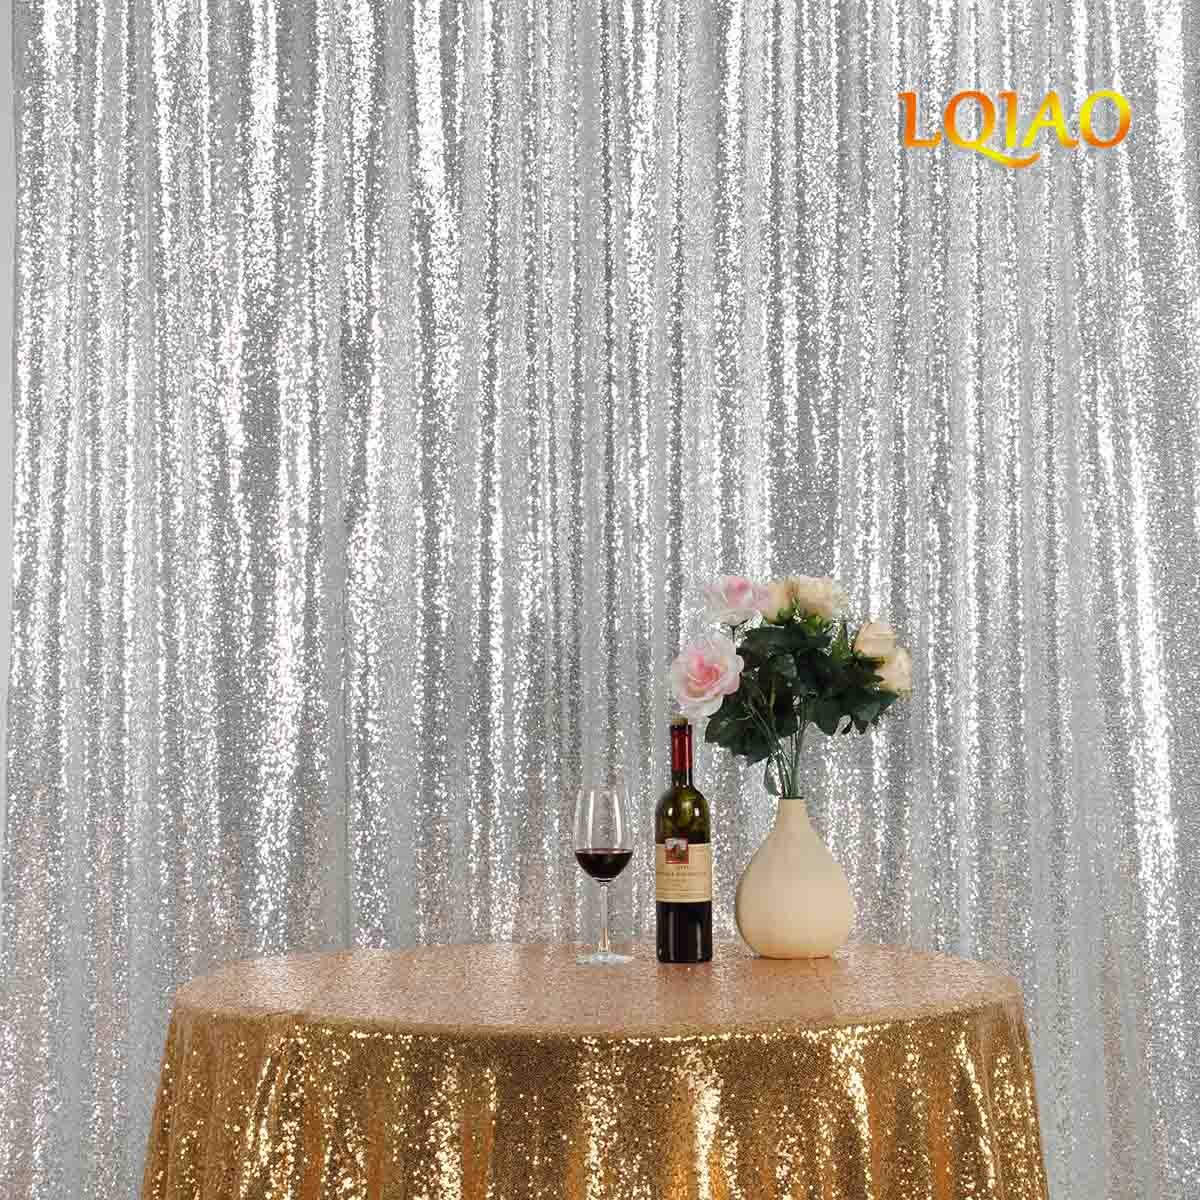 LQIAO Embroidered Sequin Fabric Backdrop Curtain 8FTx10FT Silver Modern Window Drapes Sequin Curtain for living room/photo booth backdrop